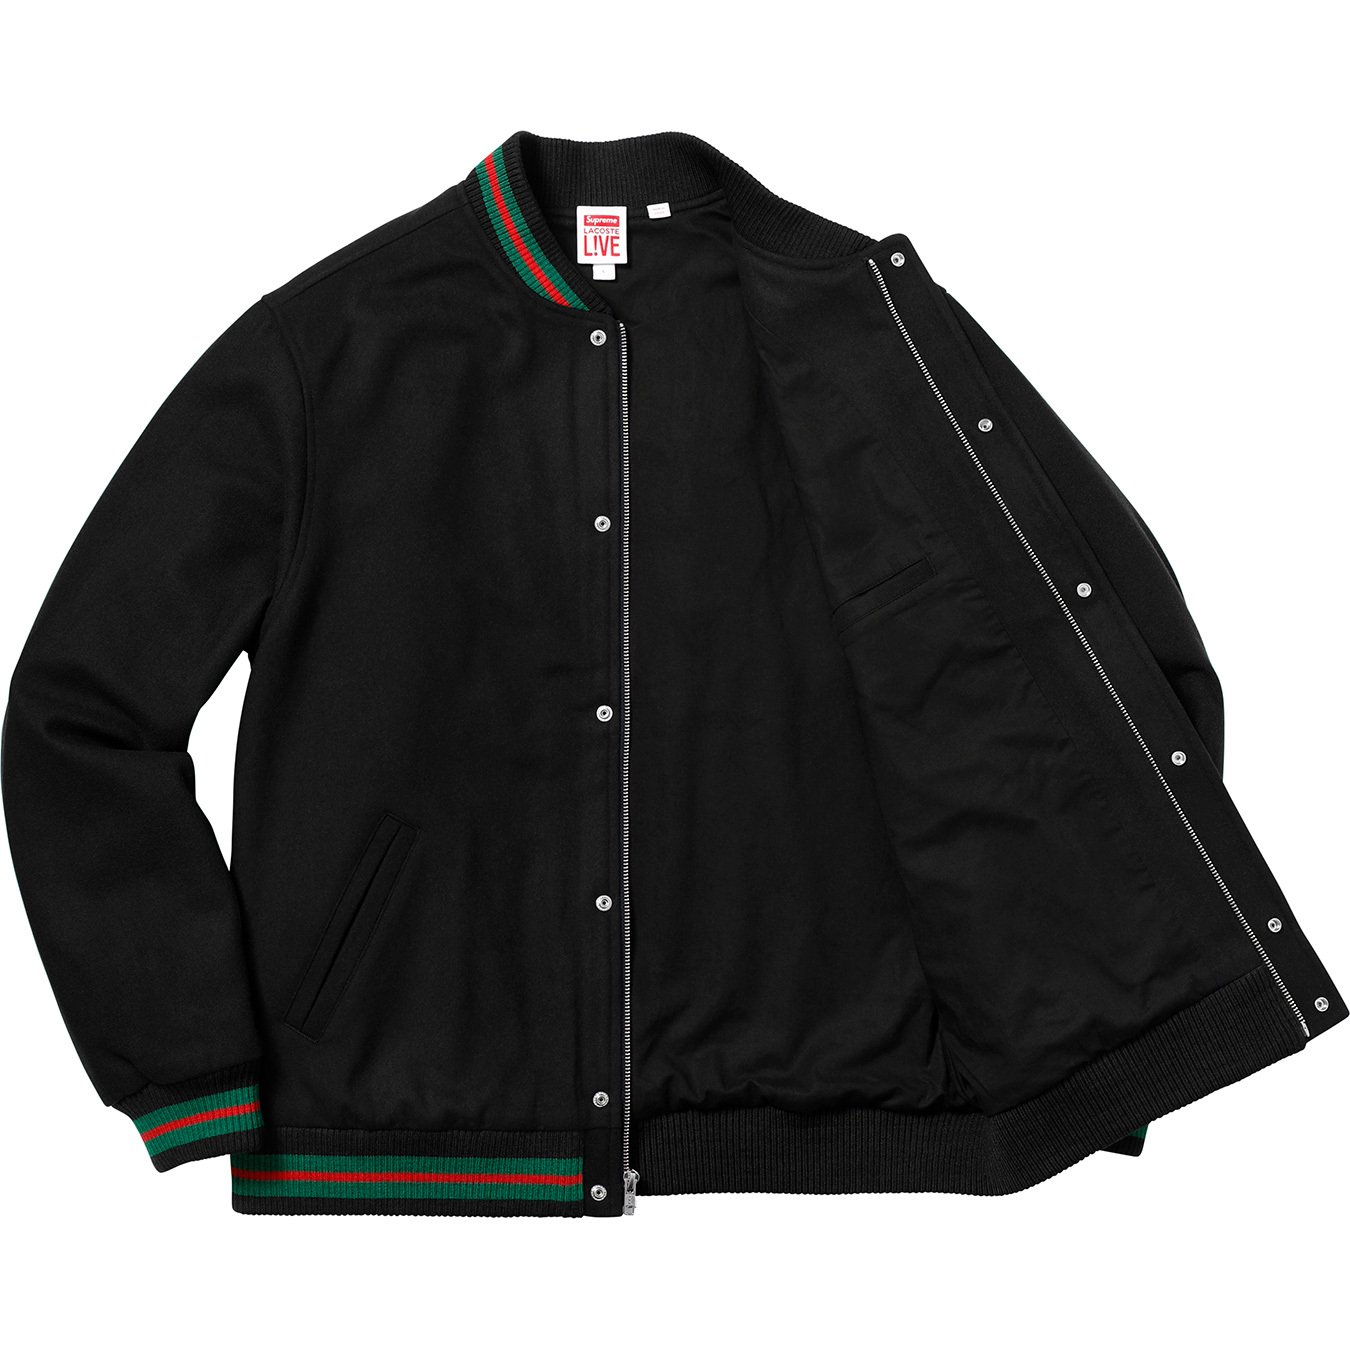 supreme-lacoste-18ss-collaboration-release-20180421-wool-varsity-jacket